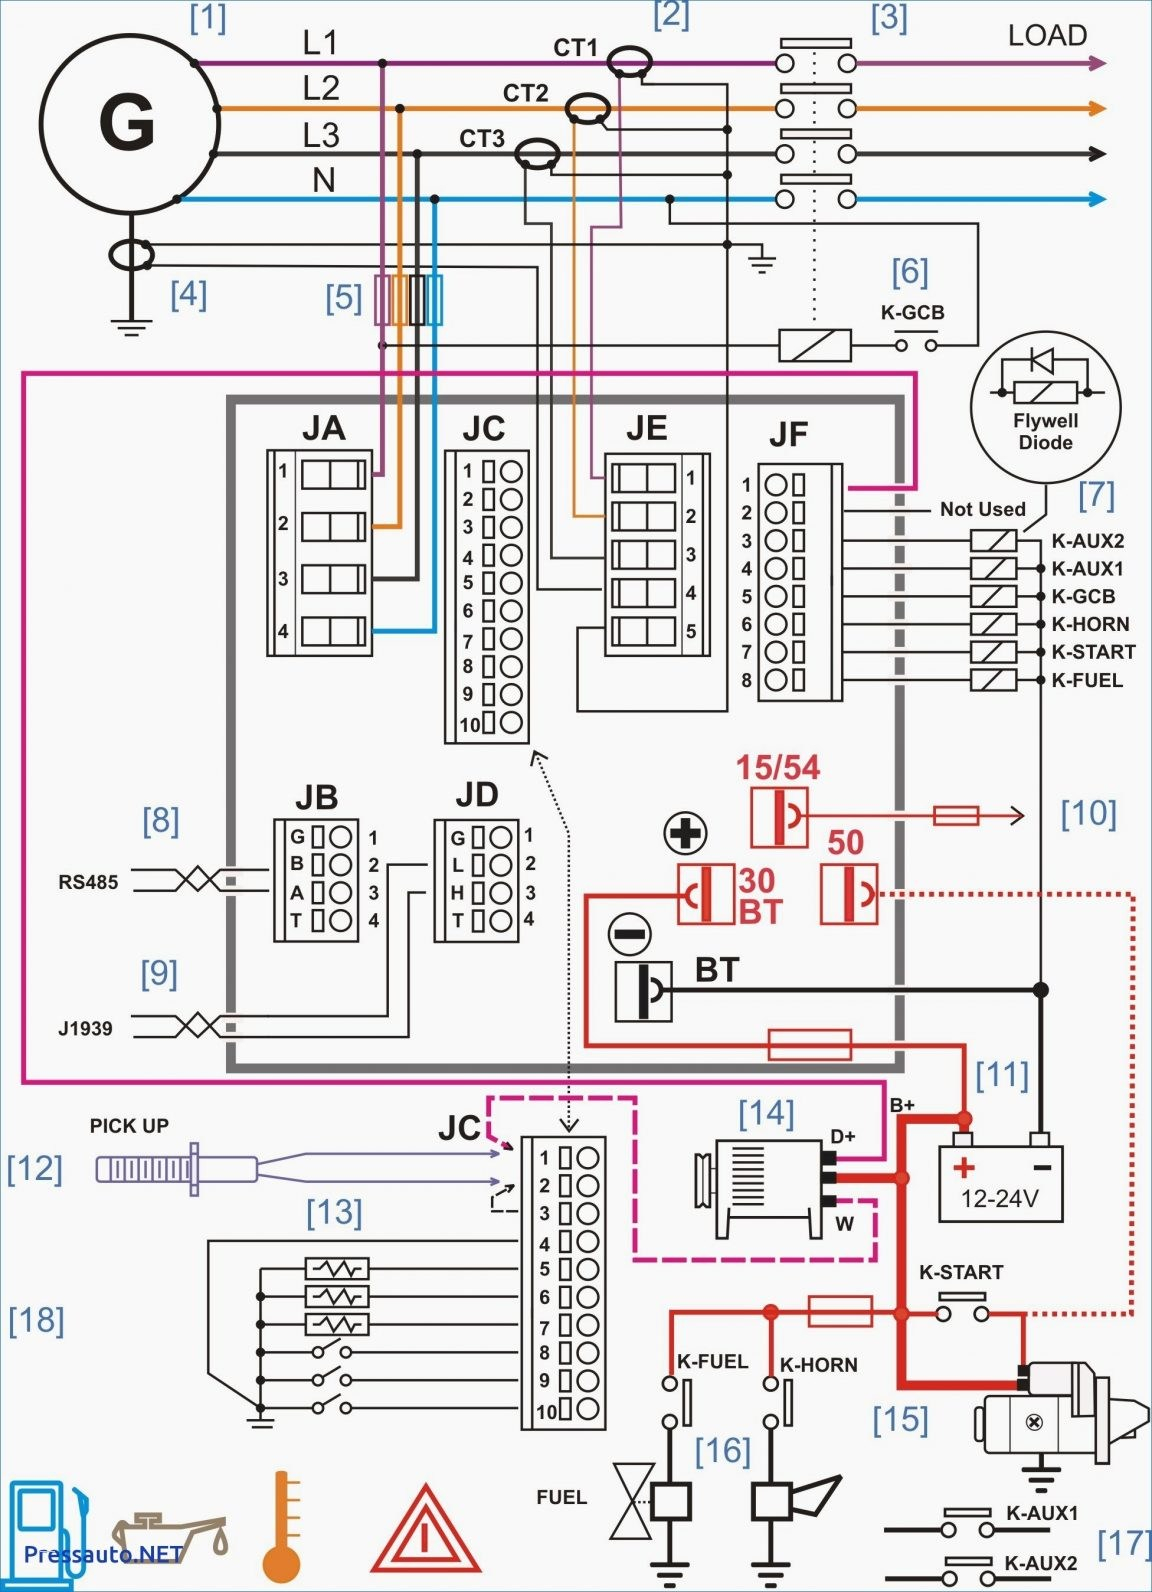 asco transfer switch wiring diagram Collection-Generator Wiring Diagram and Electrical Schematics Download Manual Generator Transfer Switch Wiring Diagram Amp Automatic 7-d